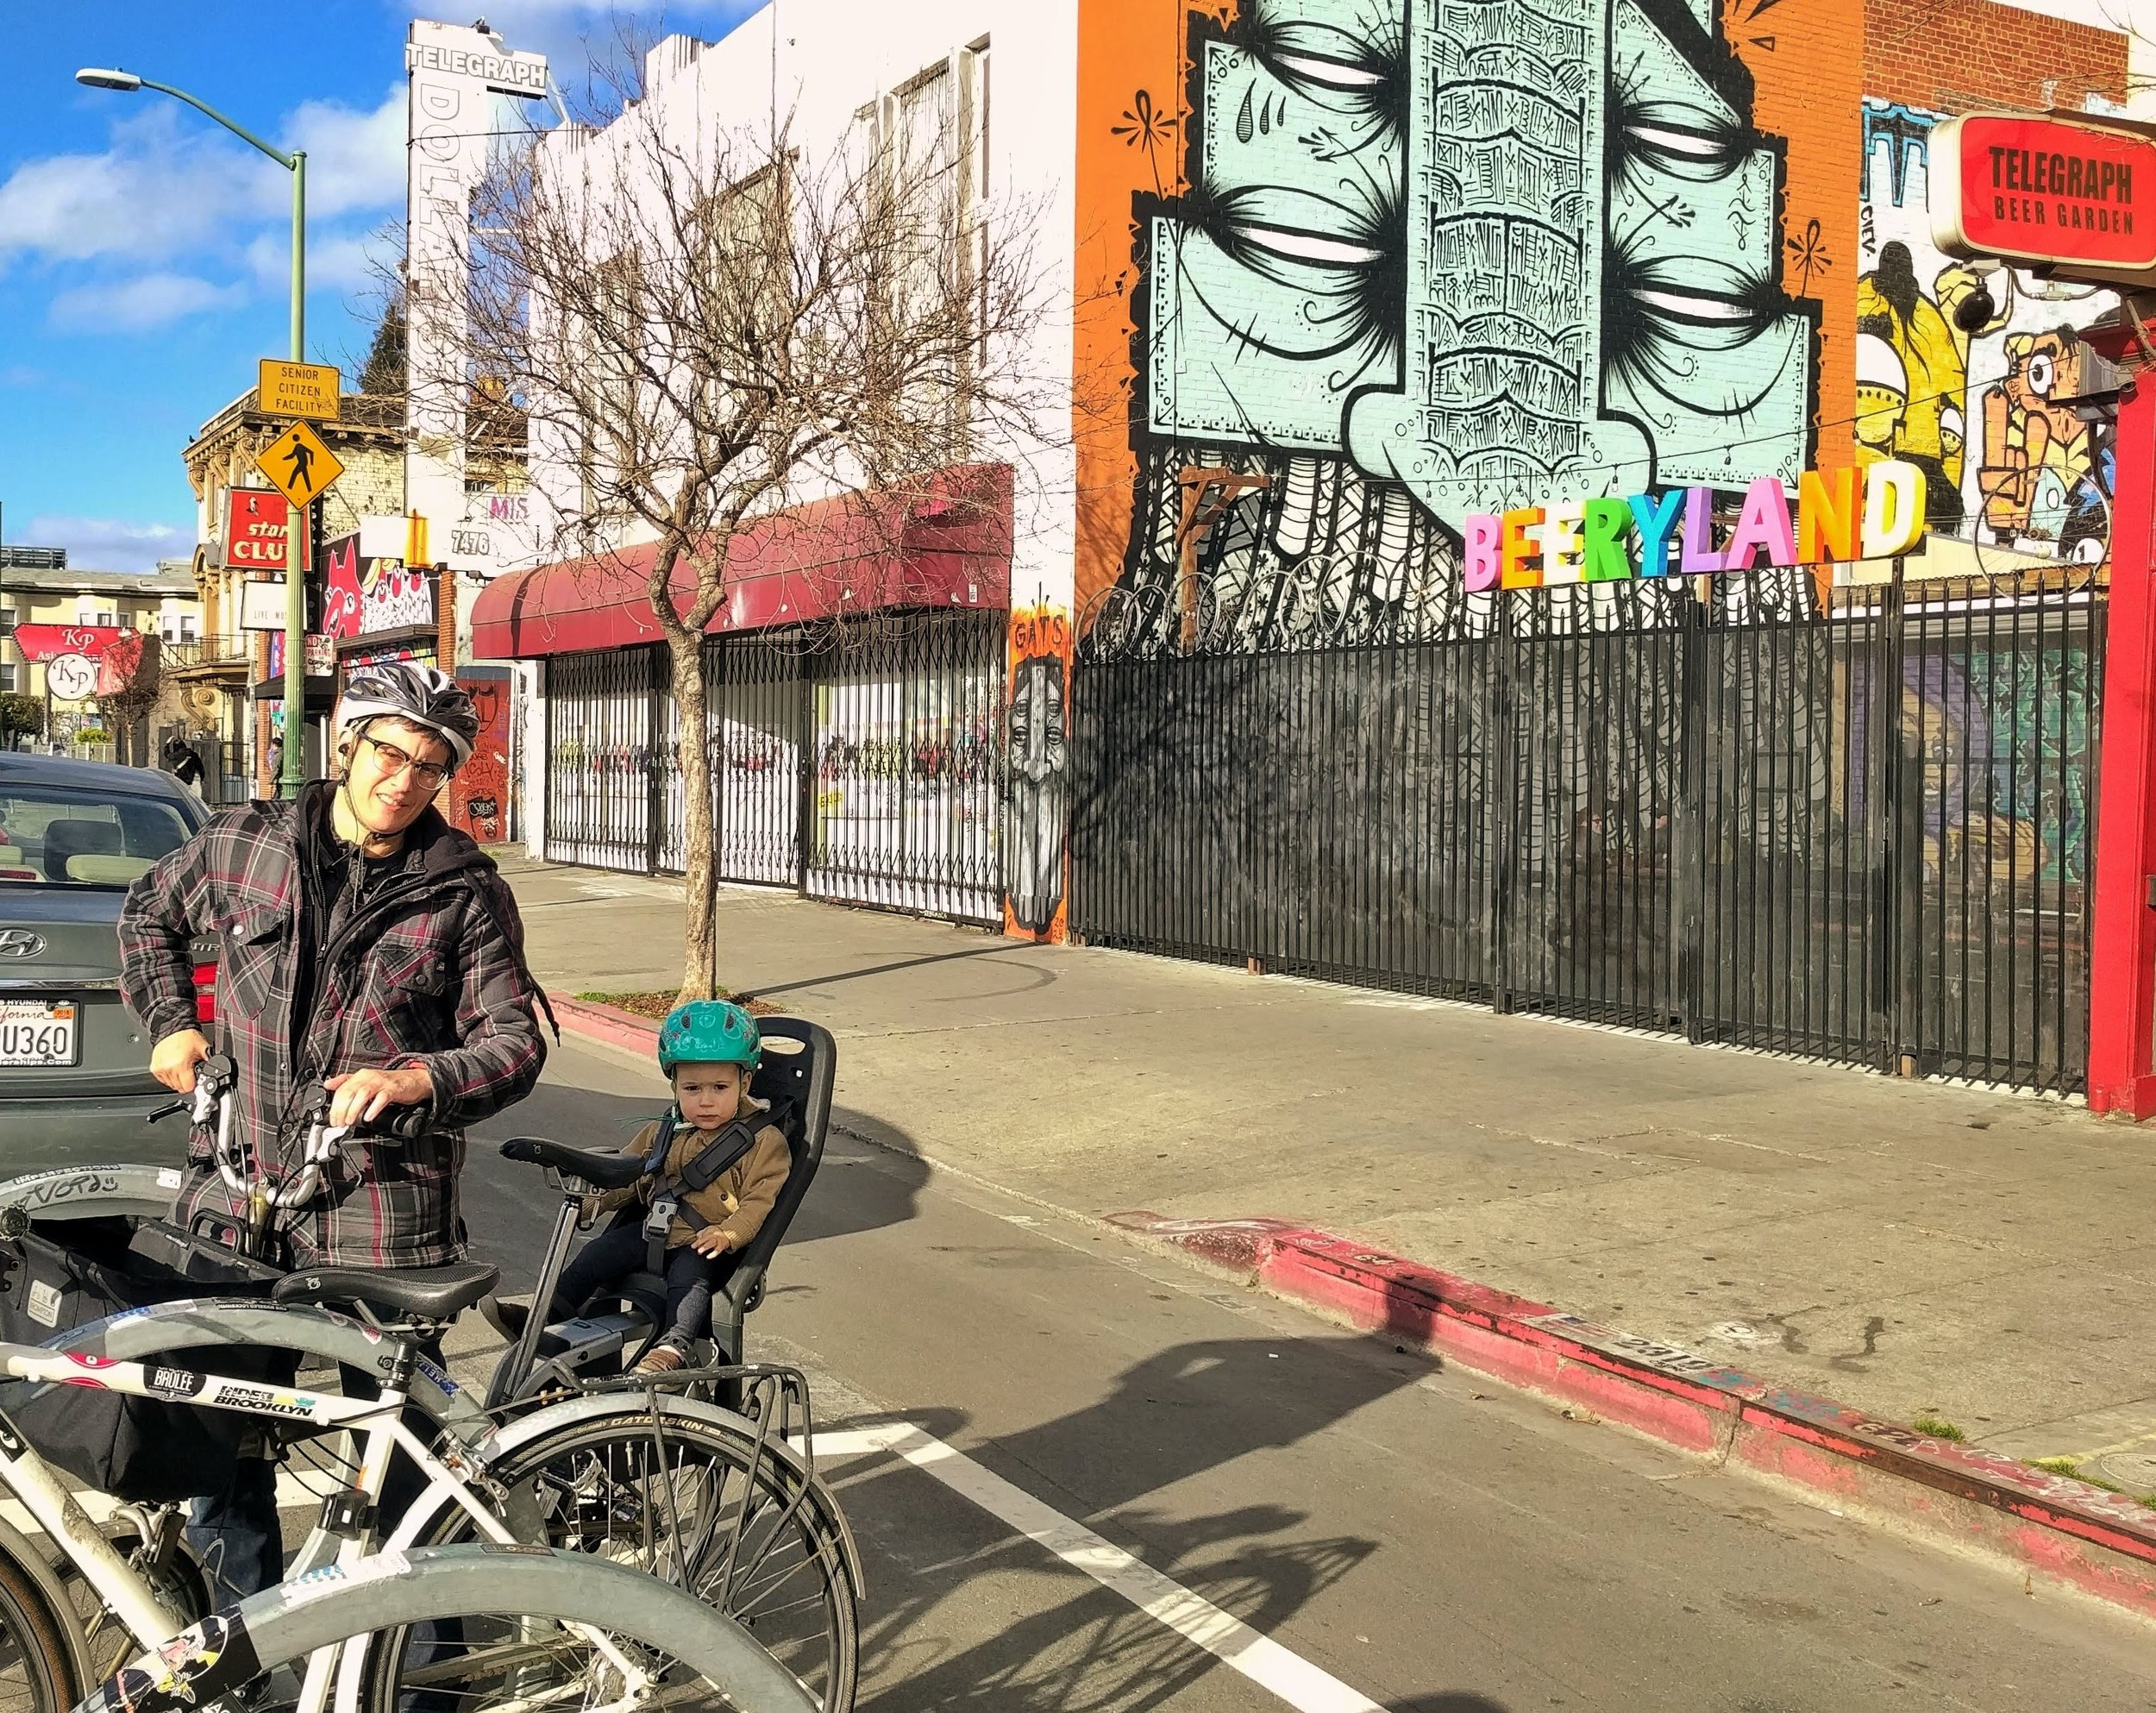 """'Beeryland,' AKA Telegraph Beer Garden  as seen from the convenient bicycle coral located out front, flanking Telegraph Avenuee's luxurious protected bike lane, which has achieved """"Stunning results""""  according to StreetsBlog ."""